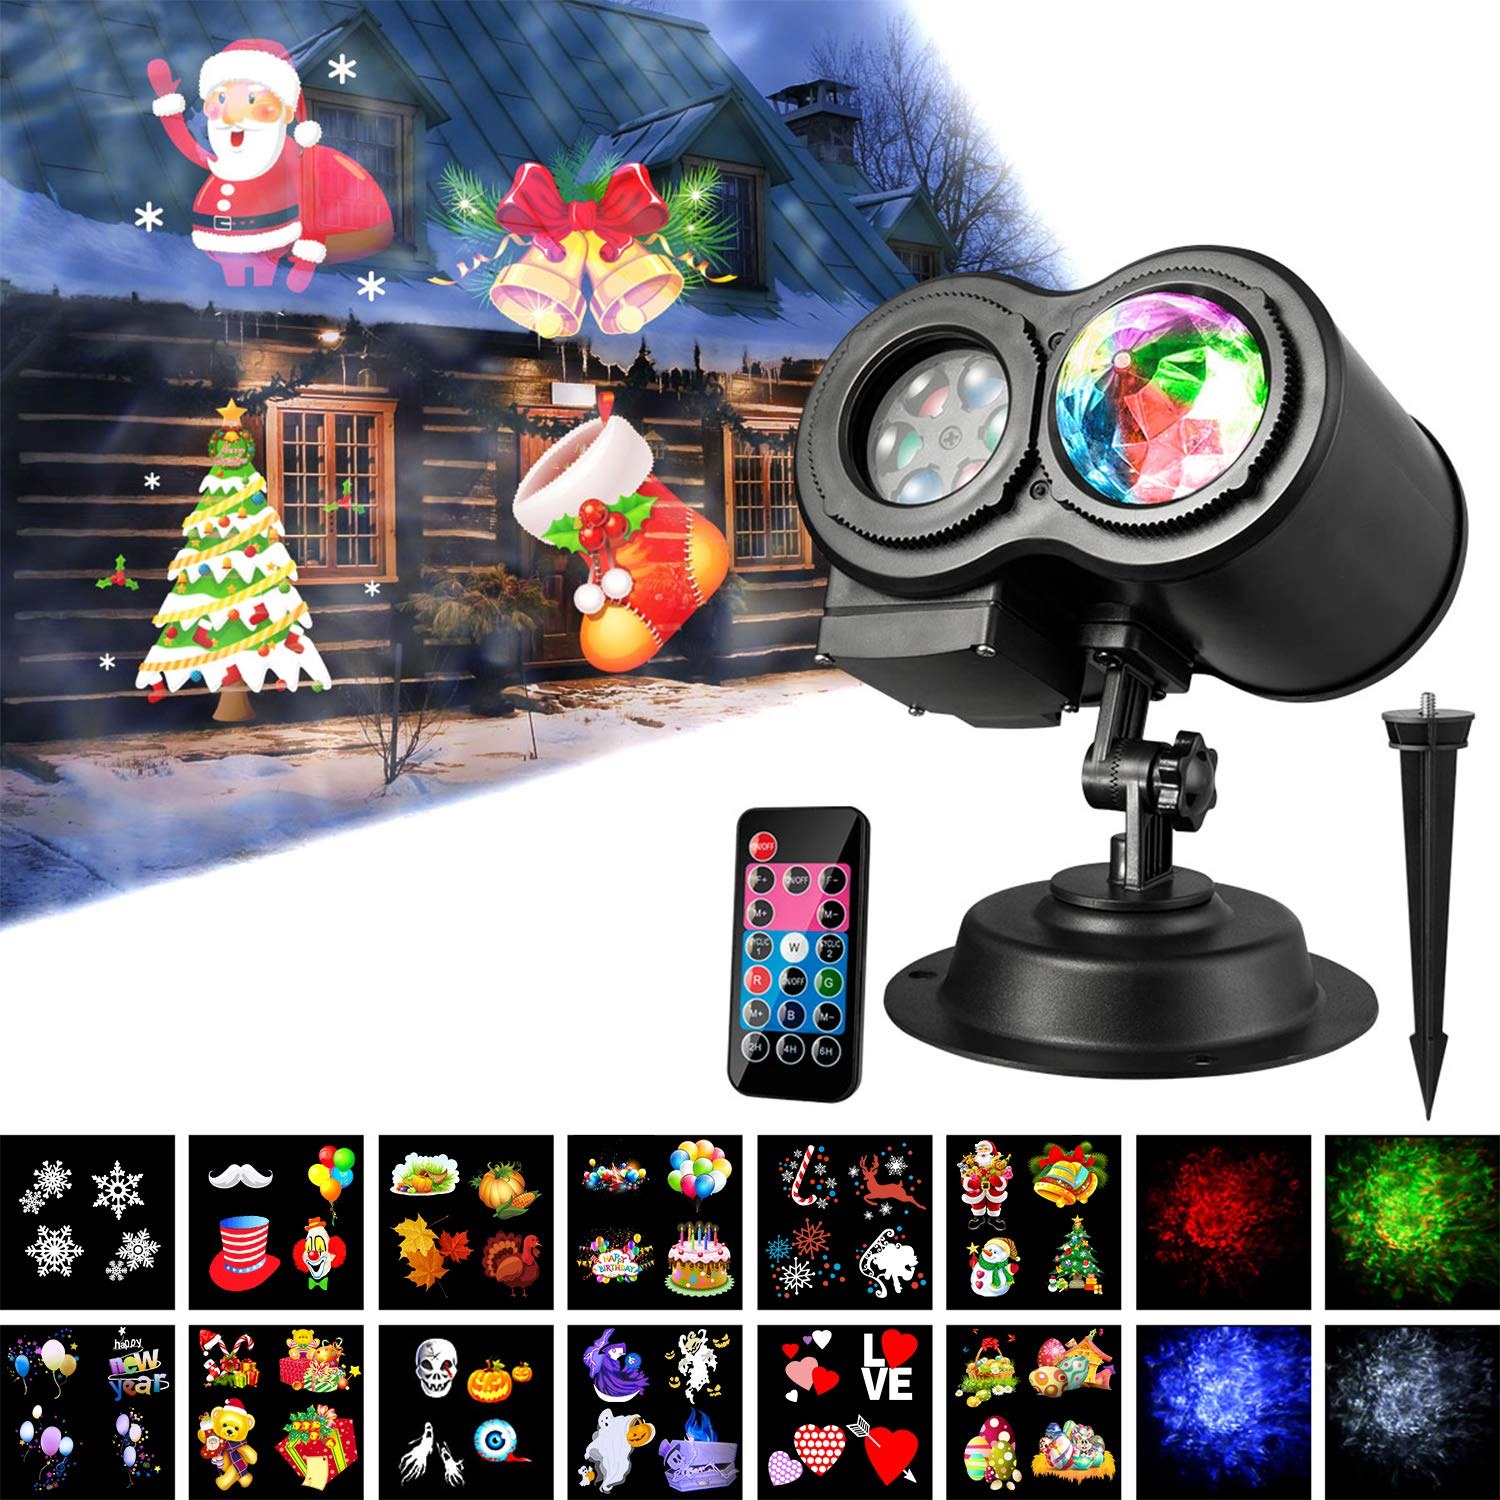 LED Projector Light Outdoor, Double Projector Lights